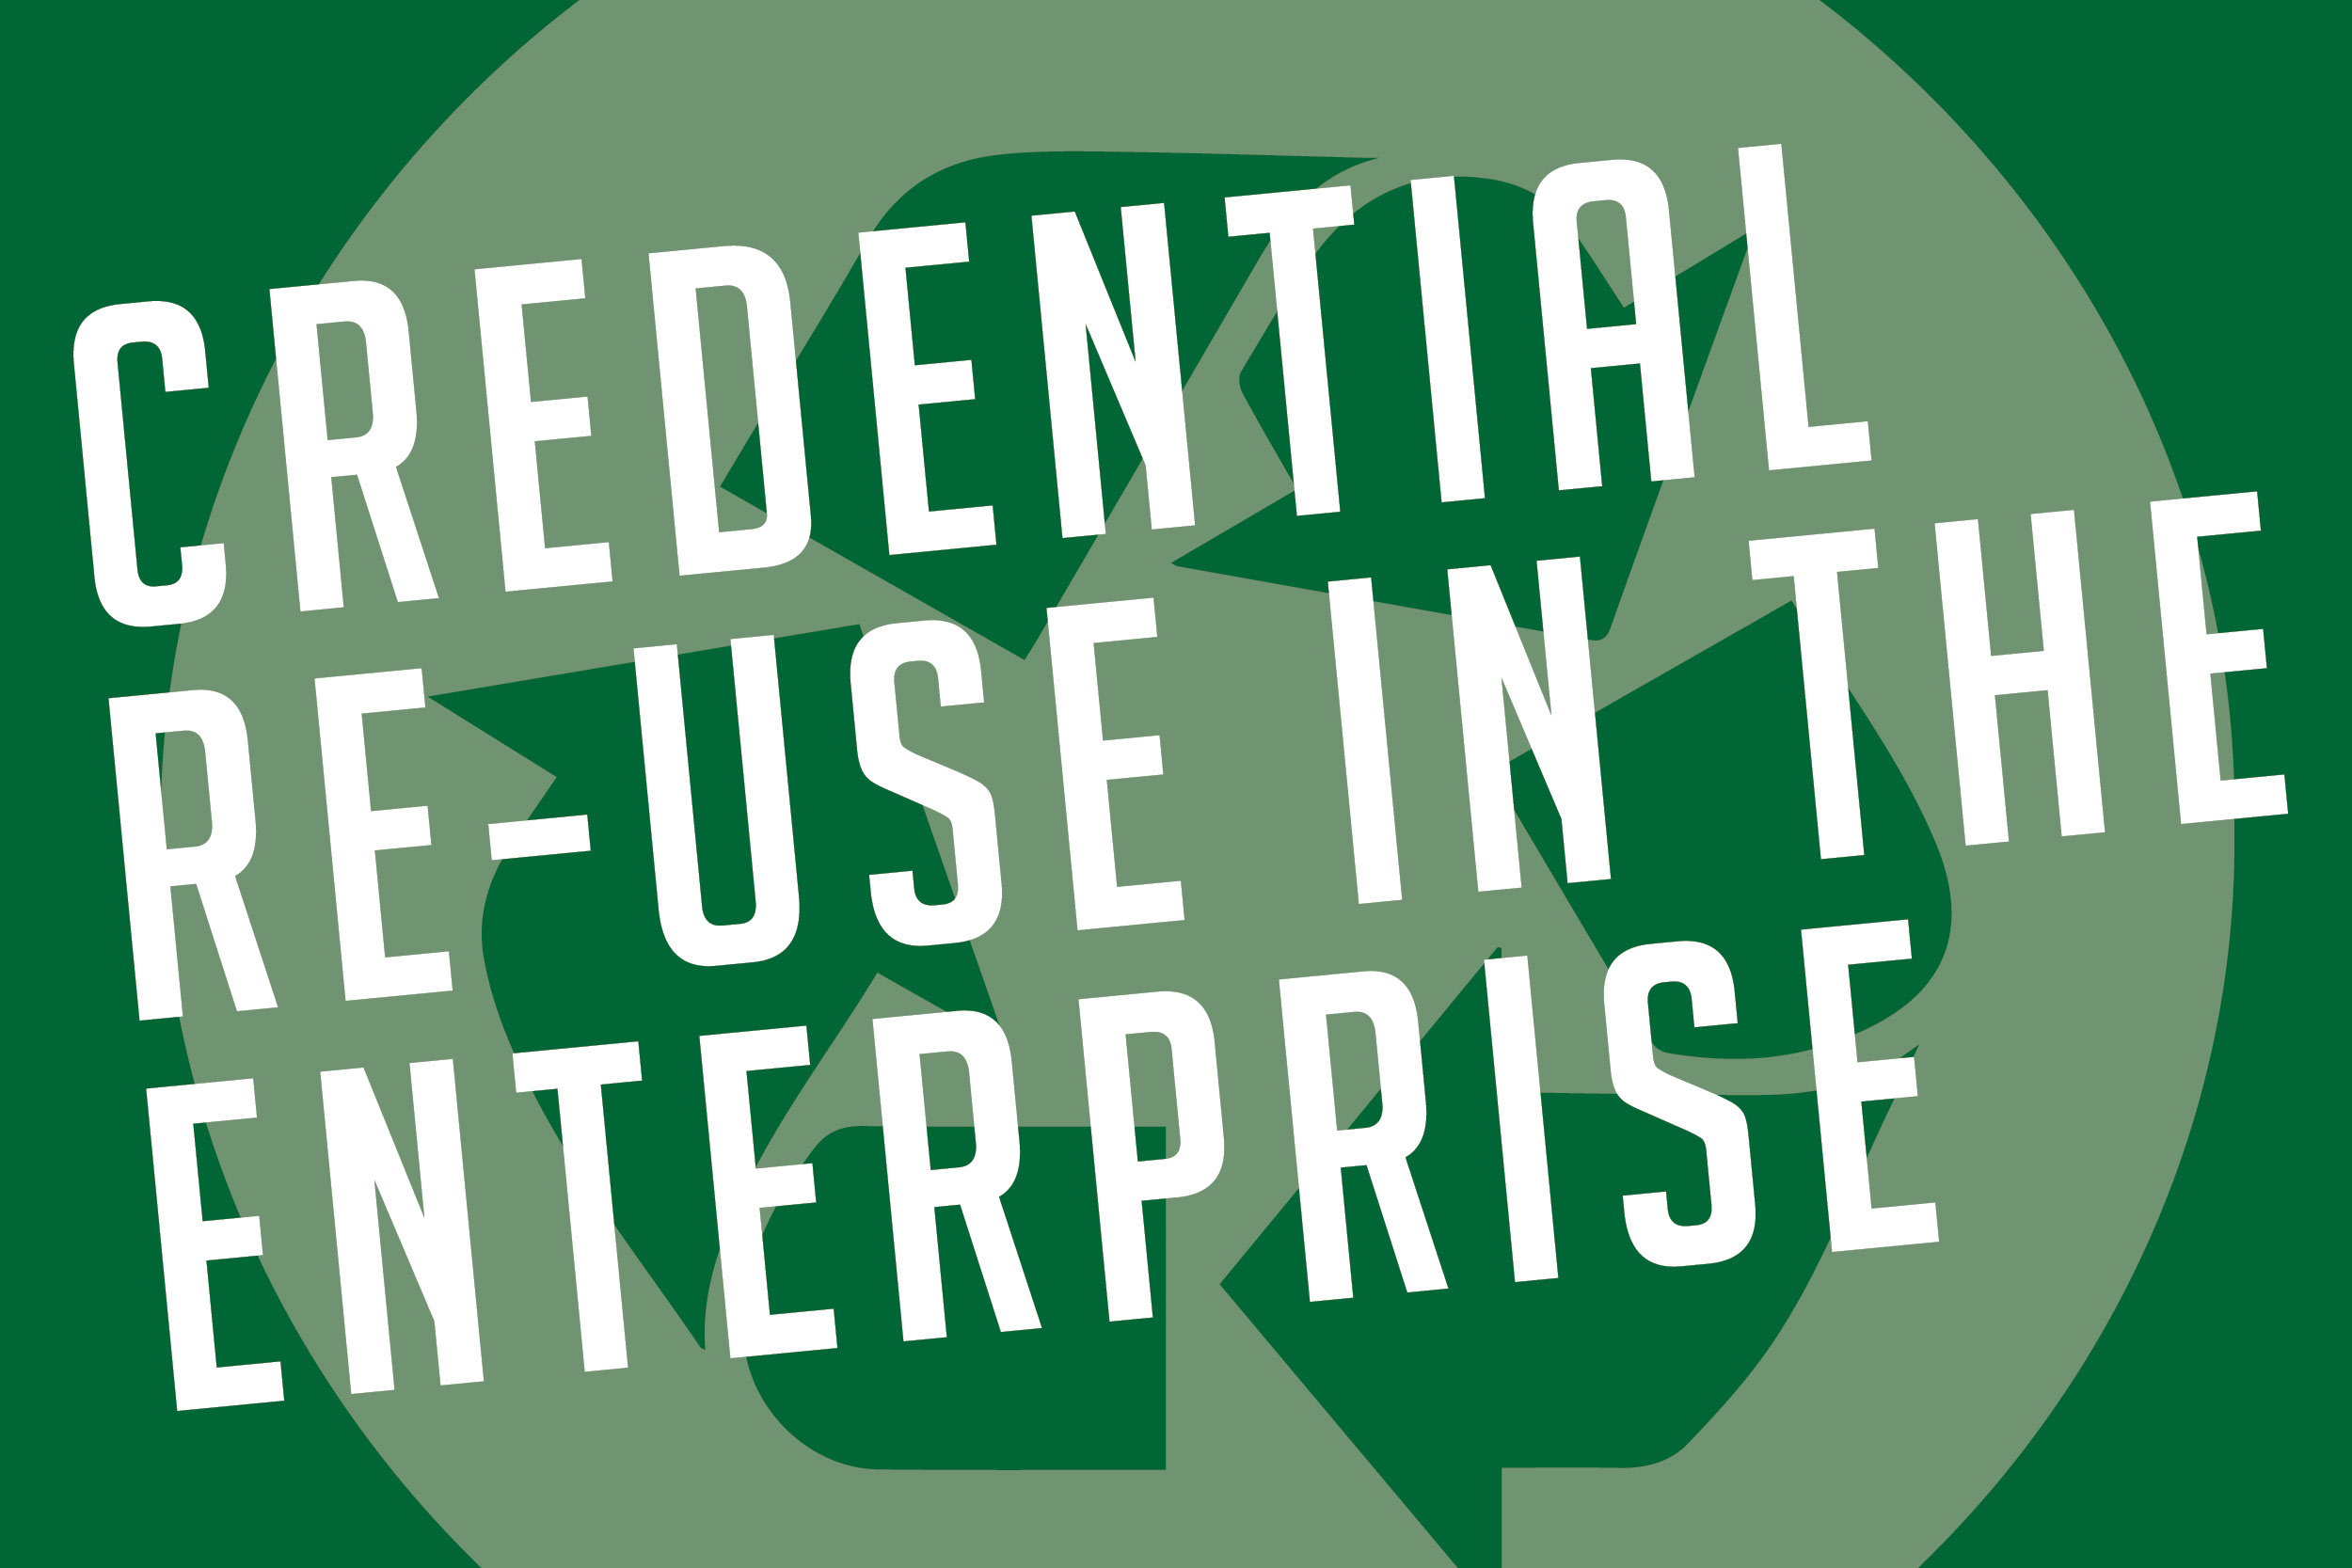 Credential Re-Use in the Enterprise graphic